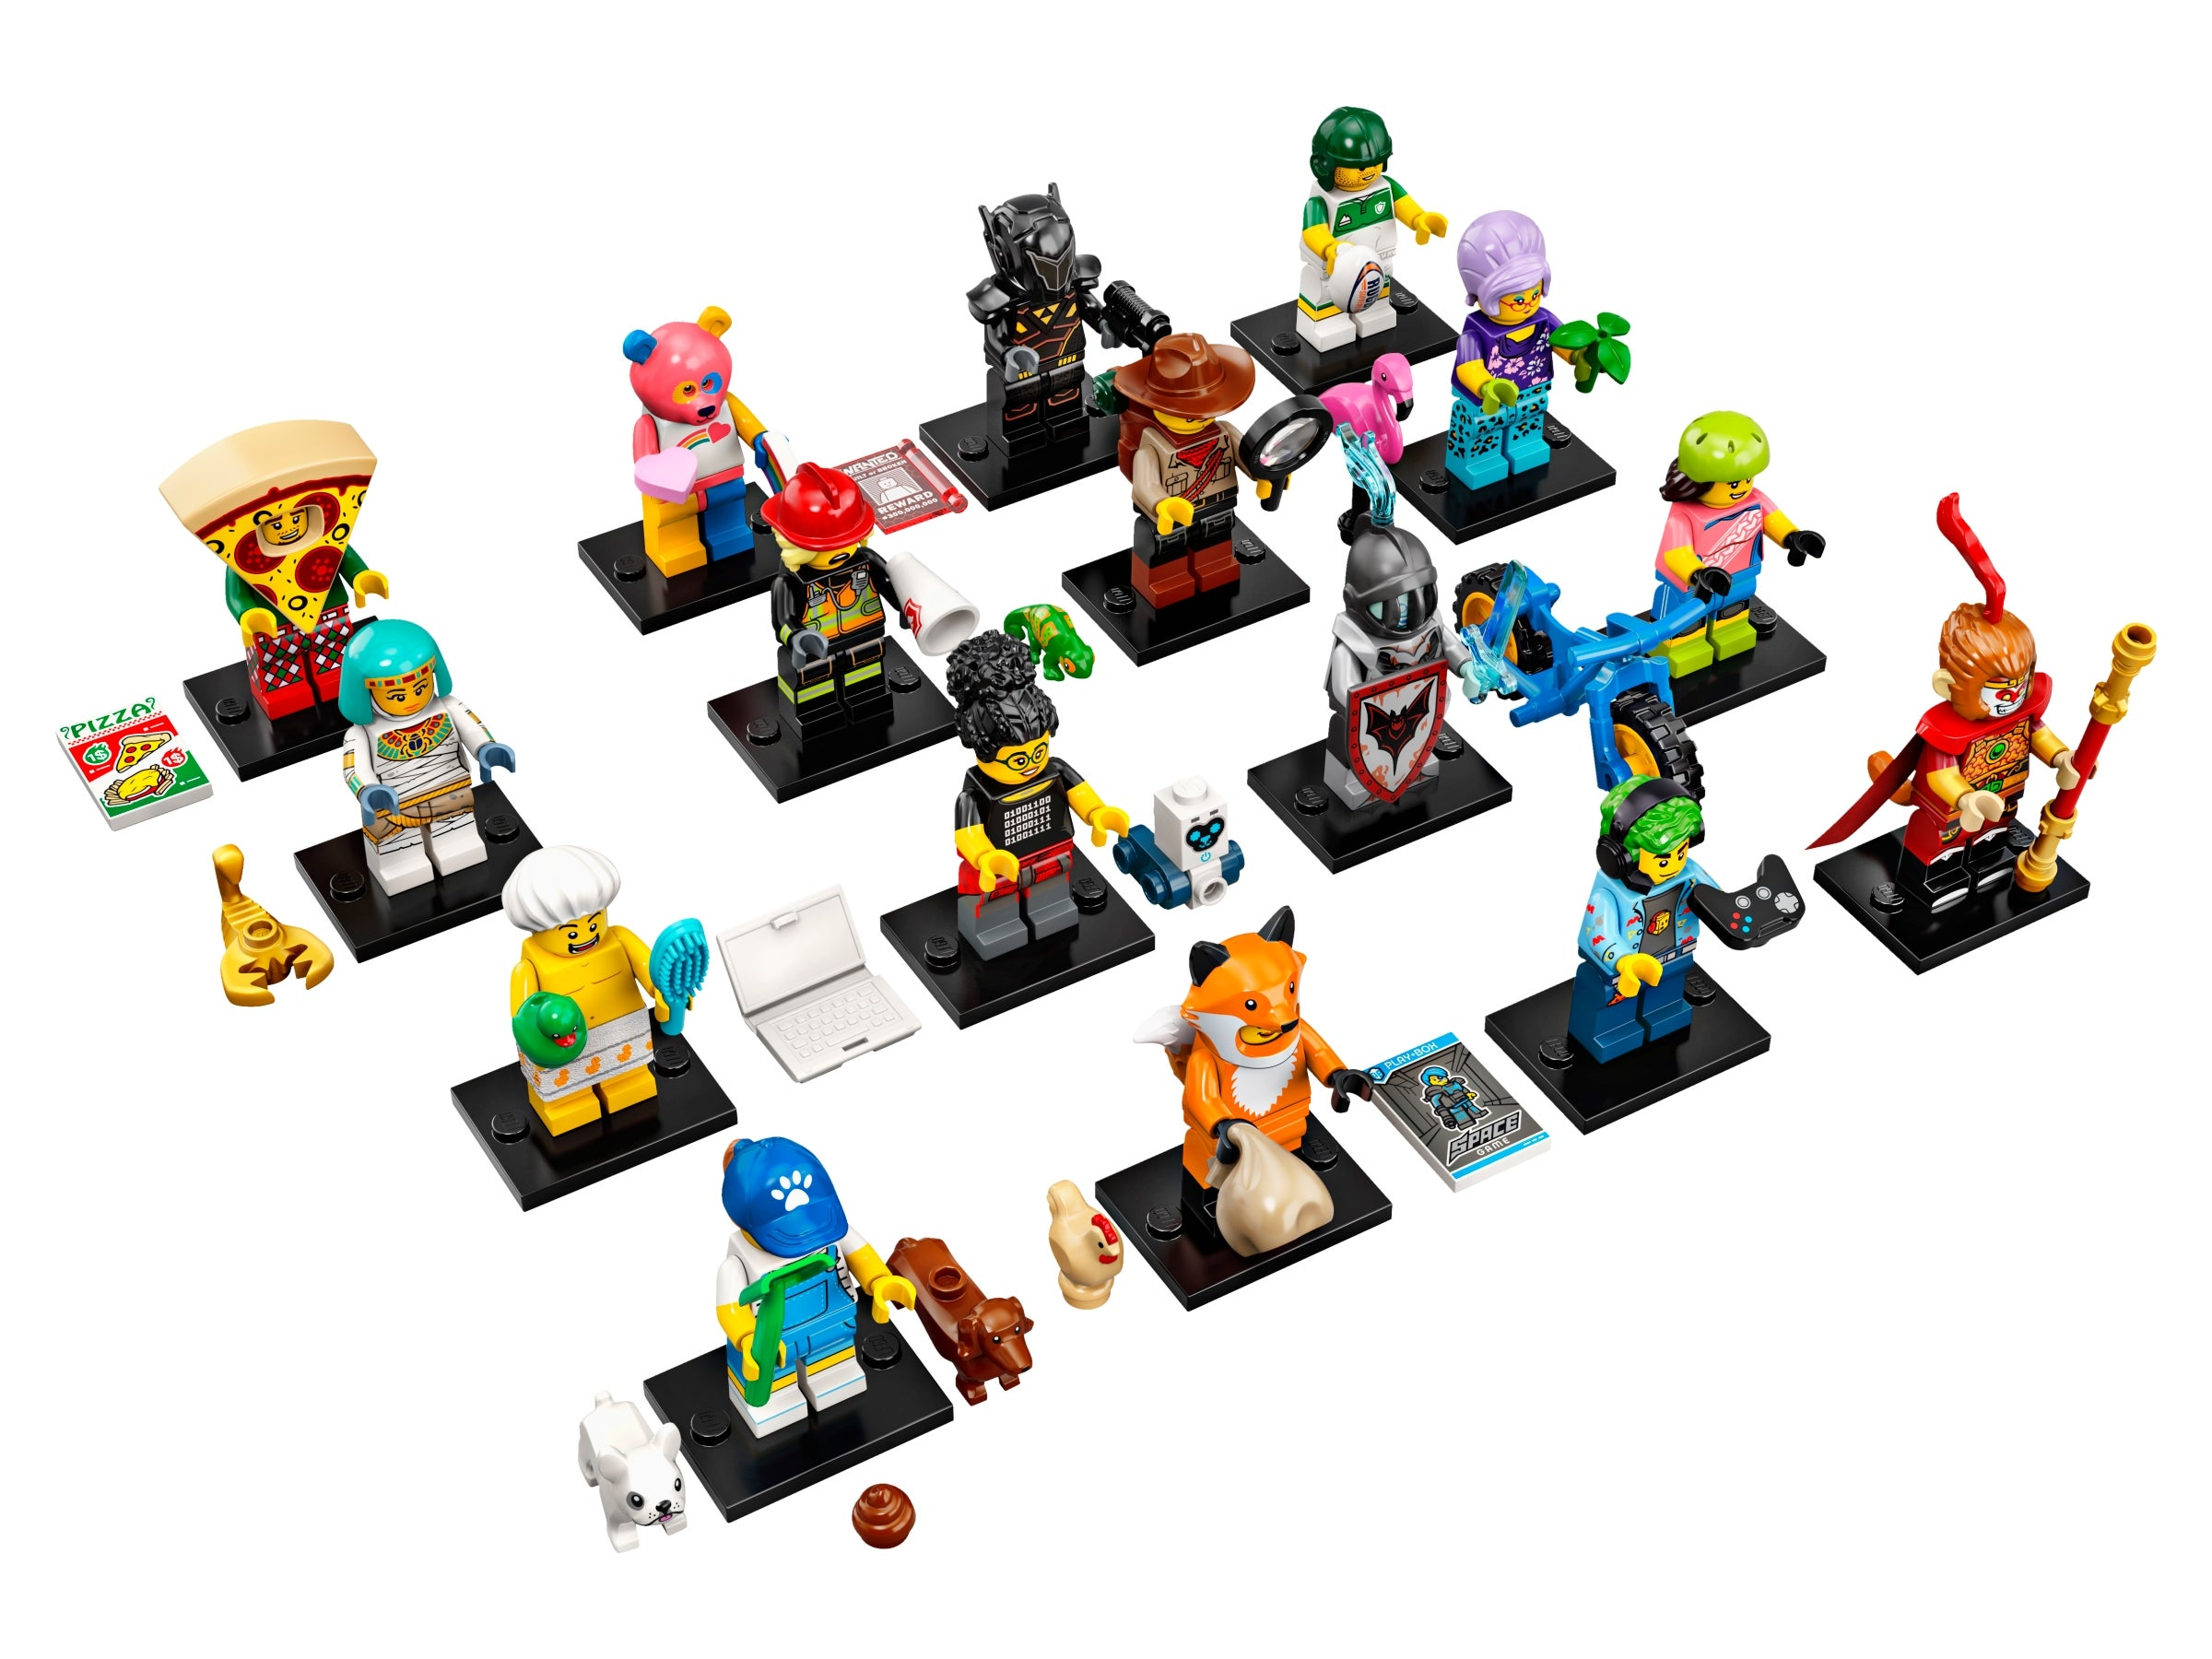 A good size for a dnd 5e mini  other RPG action figure or doll Golden pedestal to display your favorite lego minifigure or any small toy